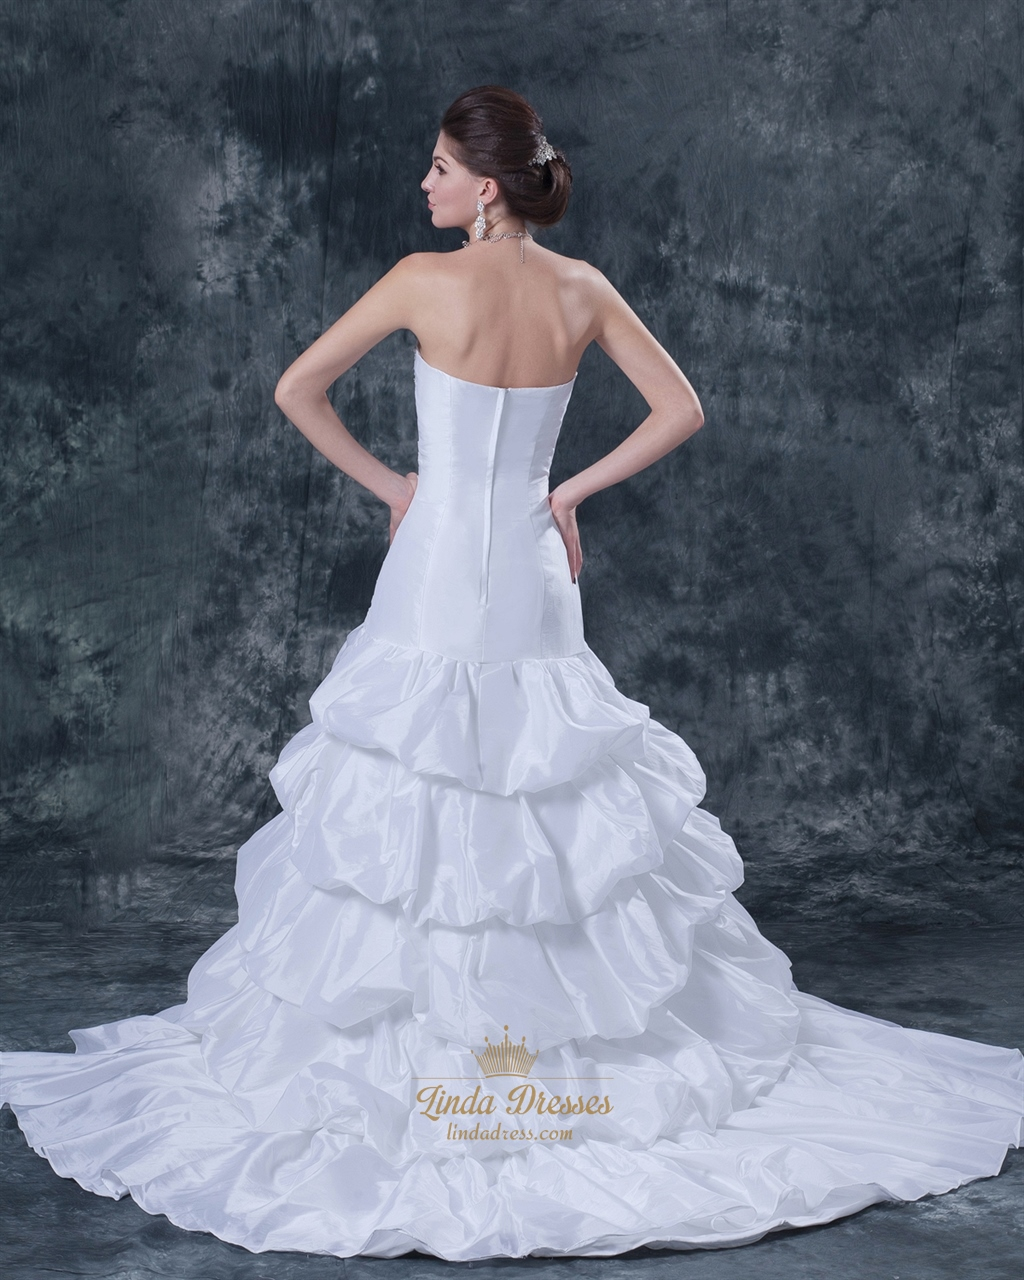 White taffeta layered skirt strapless mermaid wedding gown for Strapless taffeta wedding dress